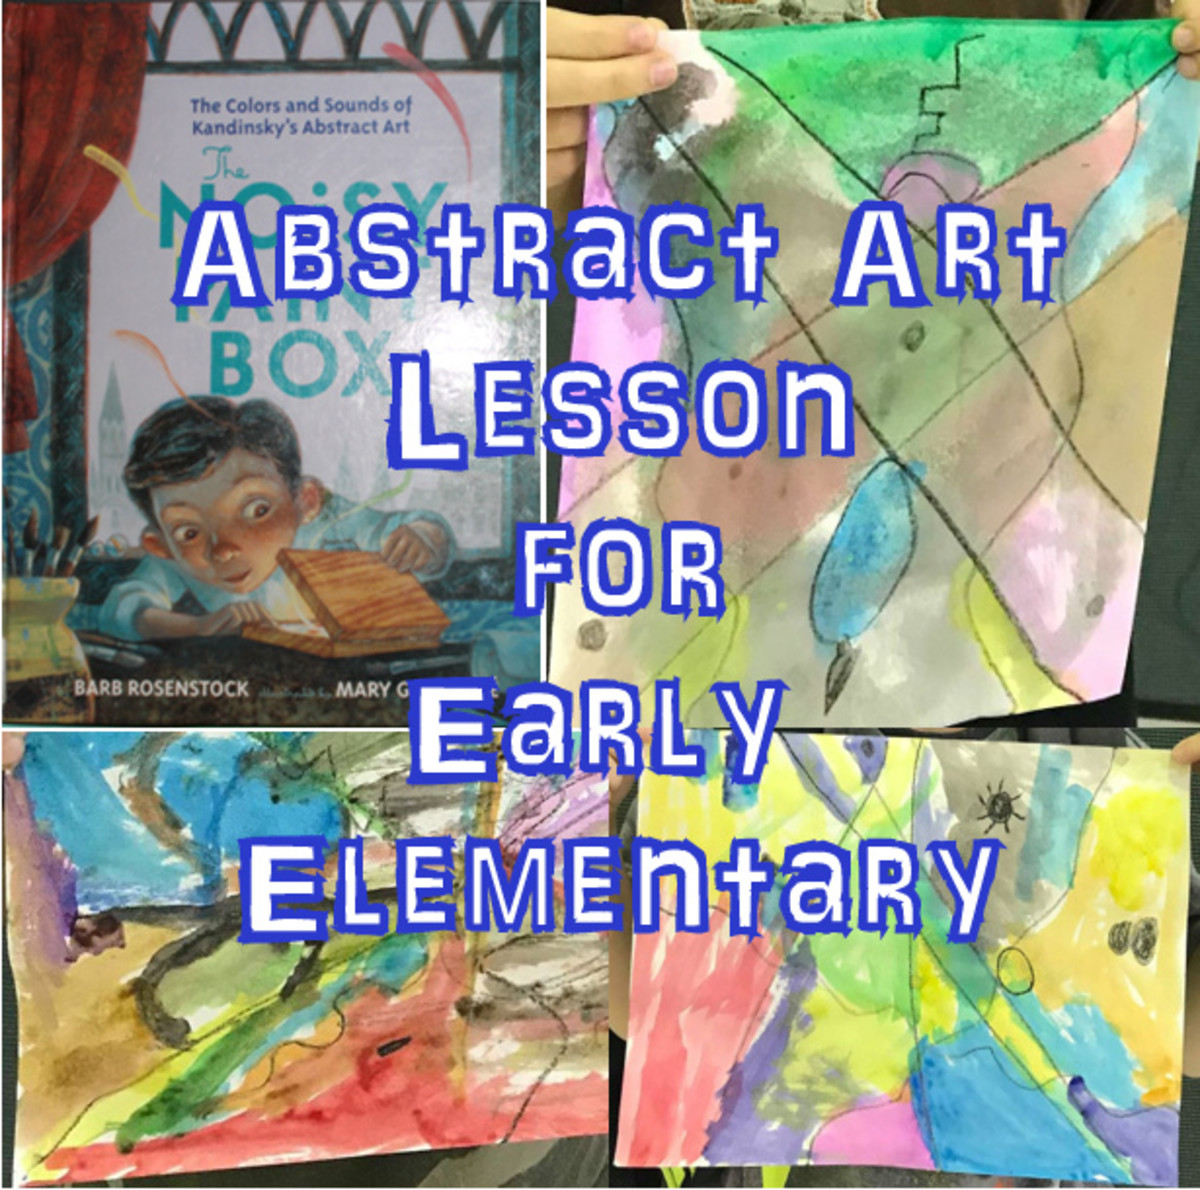 Abstract Art & Wassily Kandinsky Lesson for Early Elementary